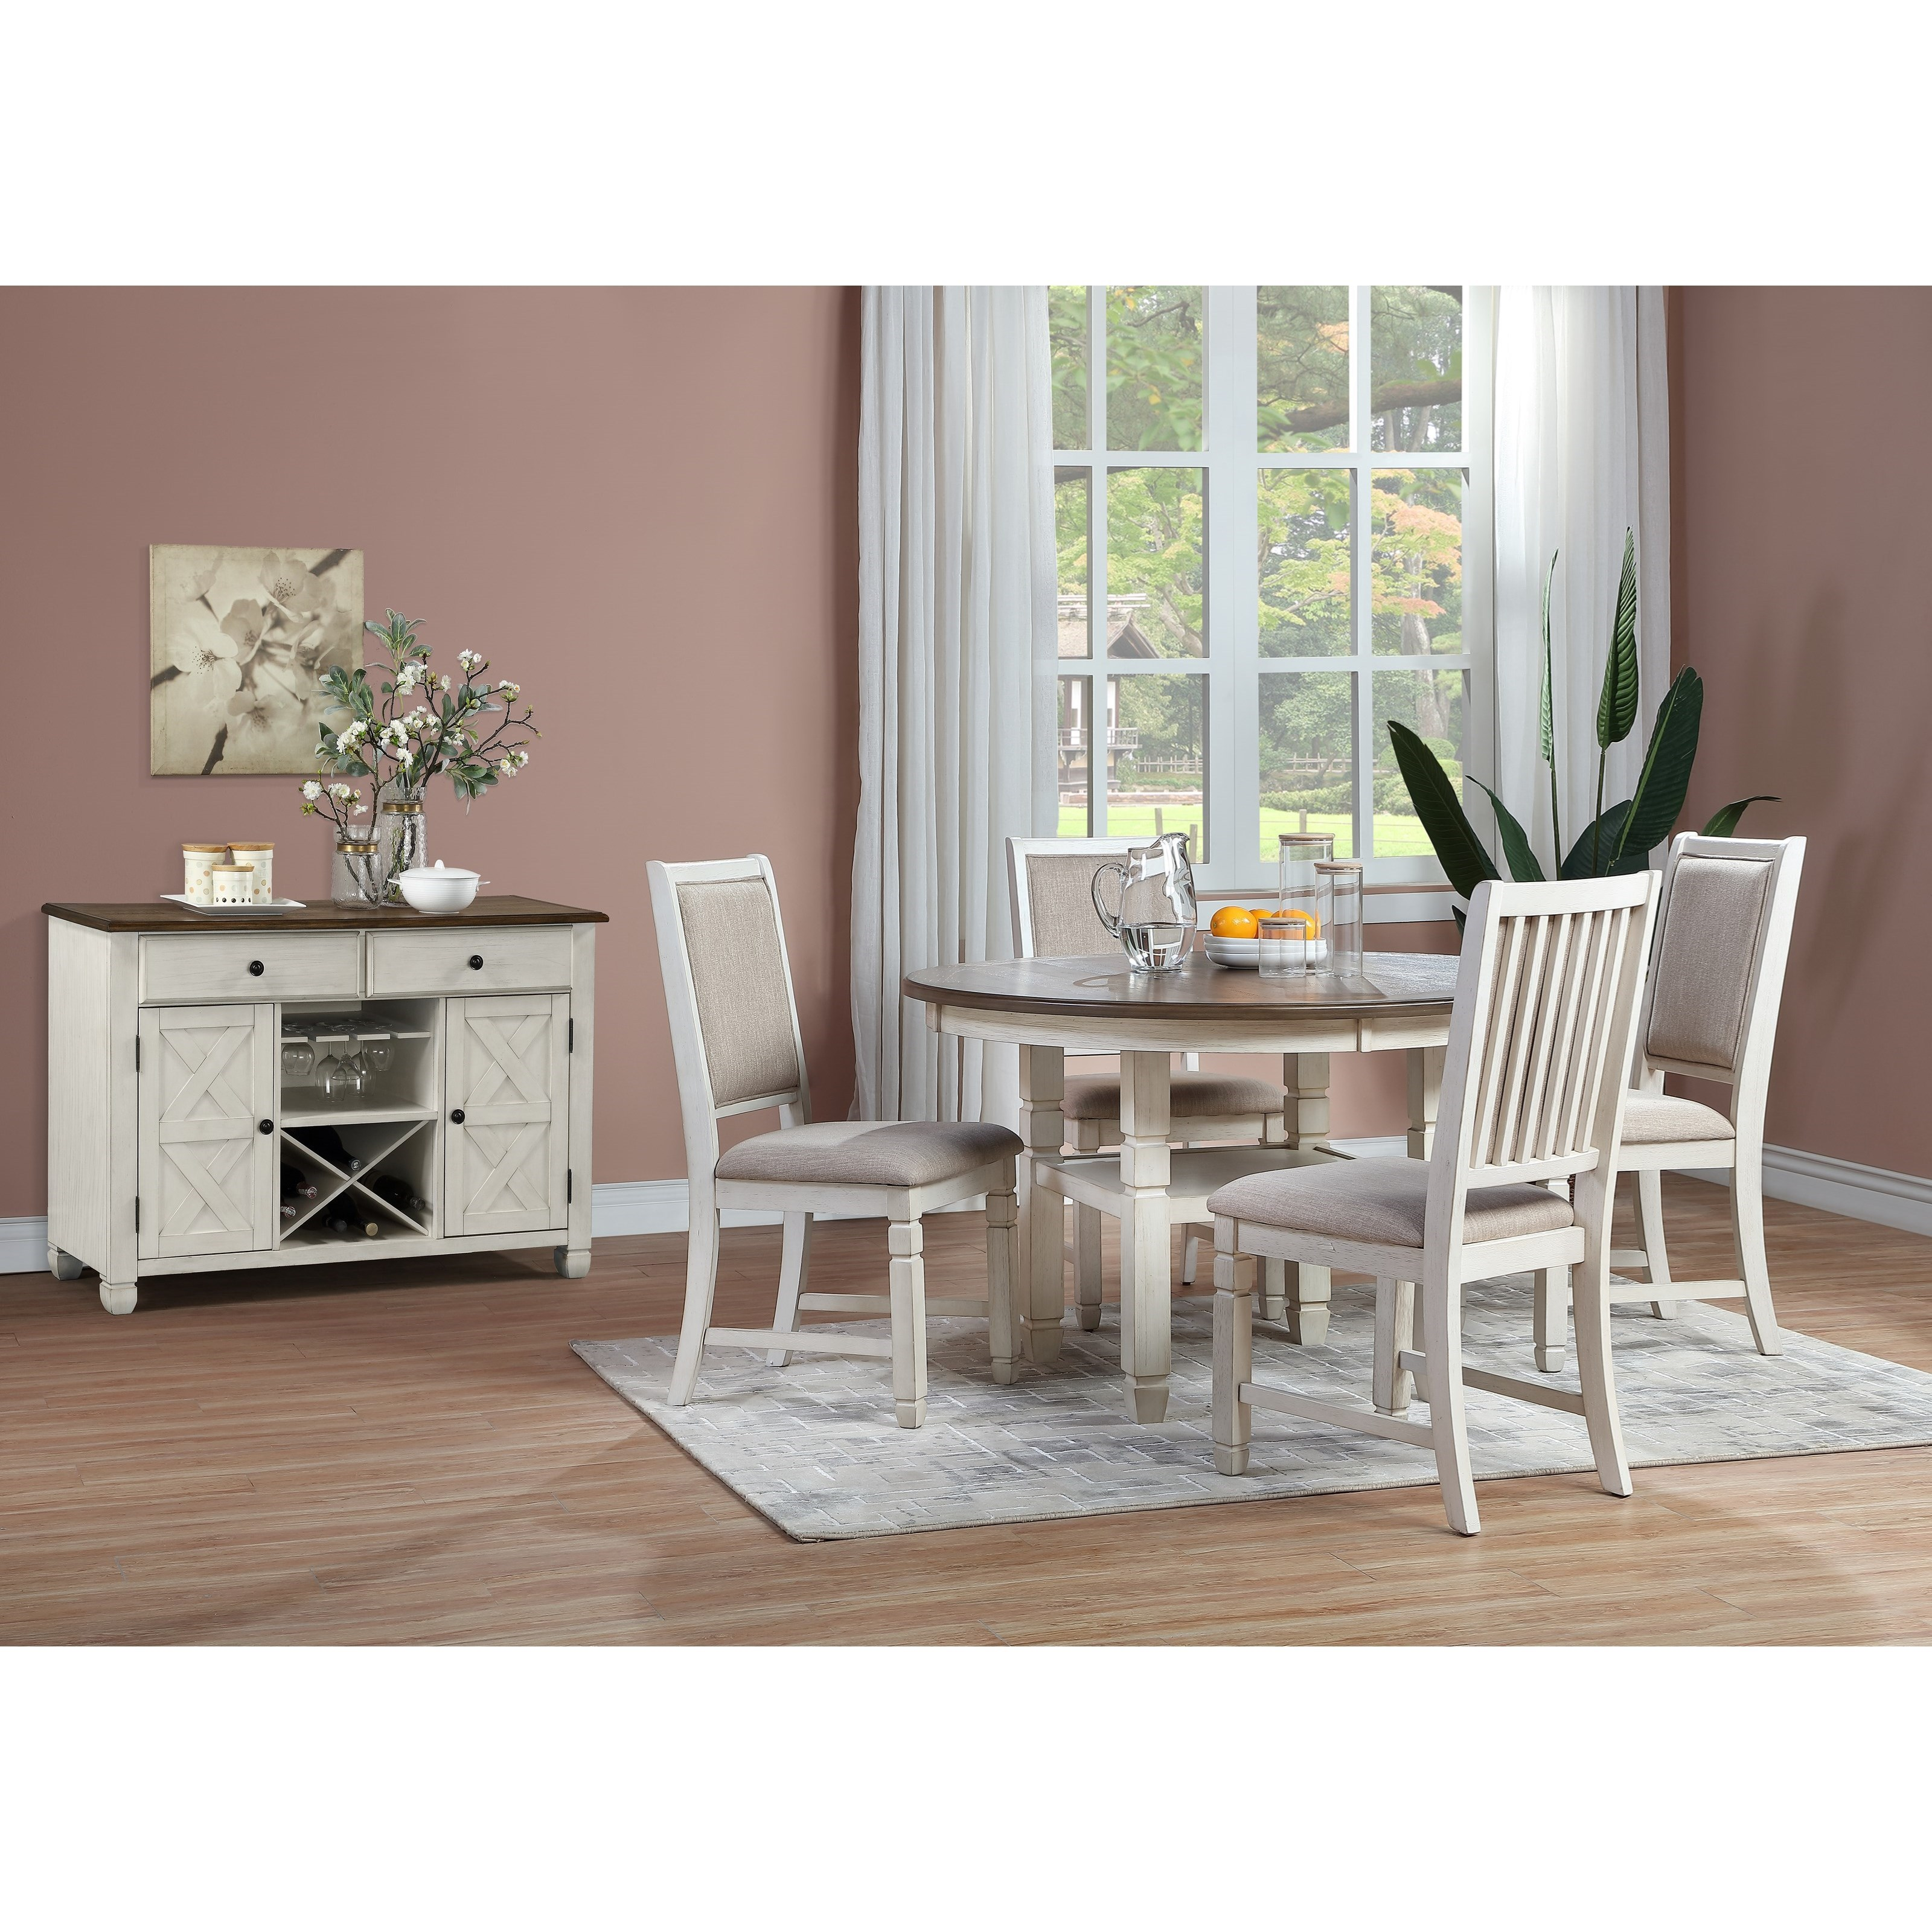 Prairie Point Dining Room Group by New Classic at Beds N Stuff